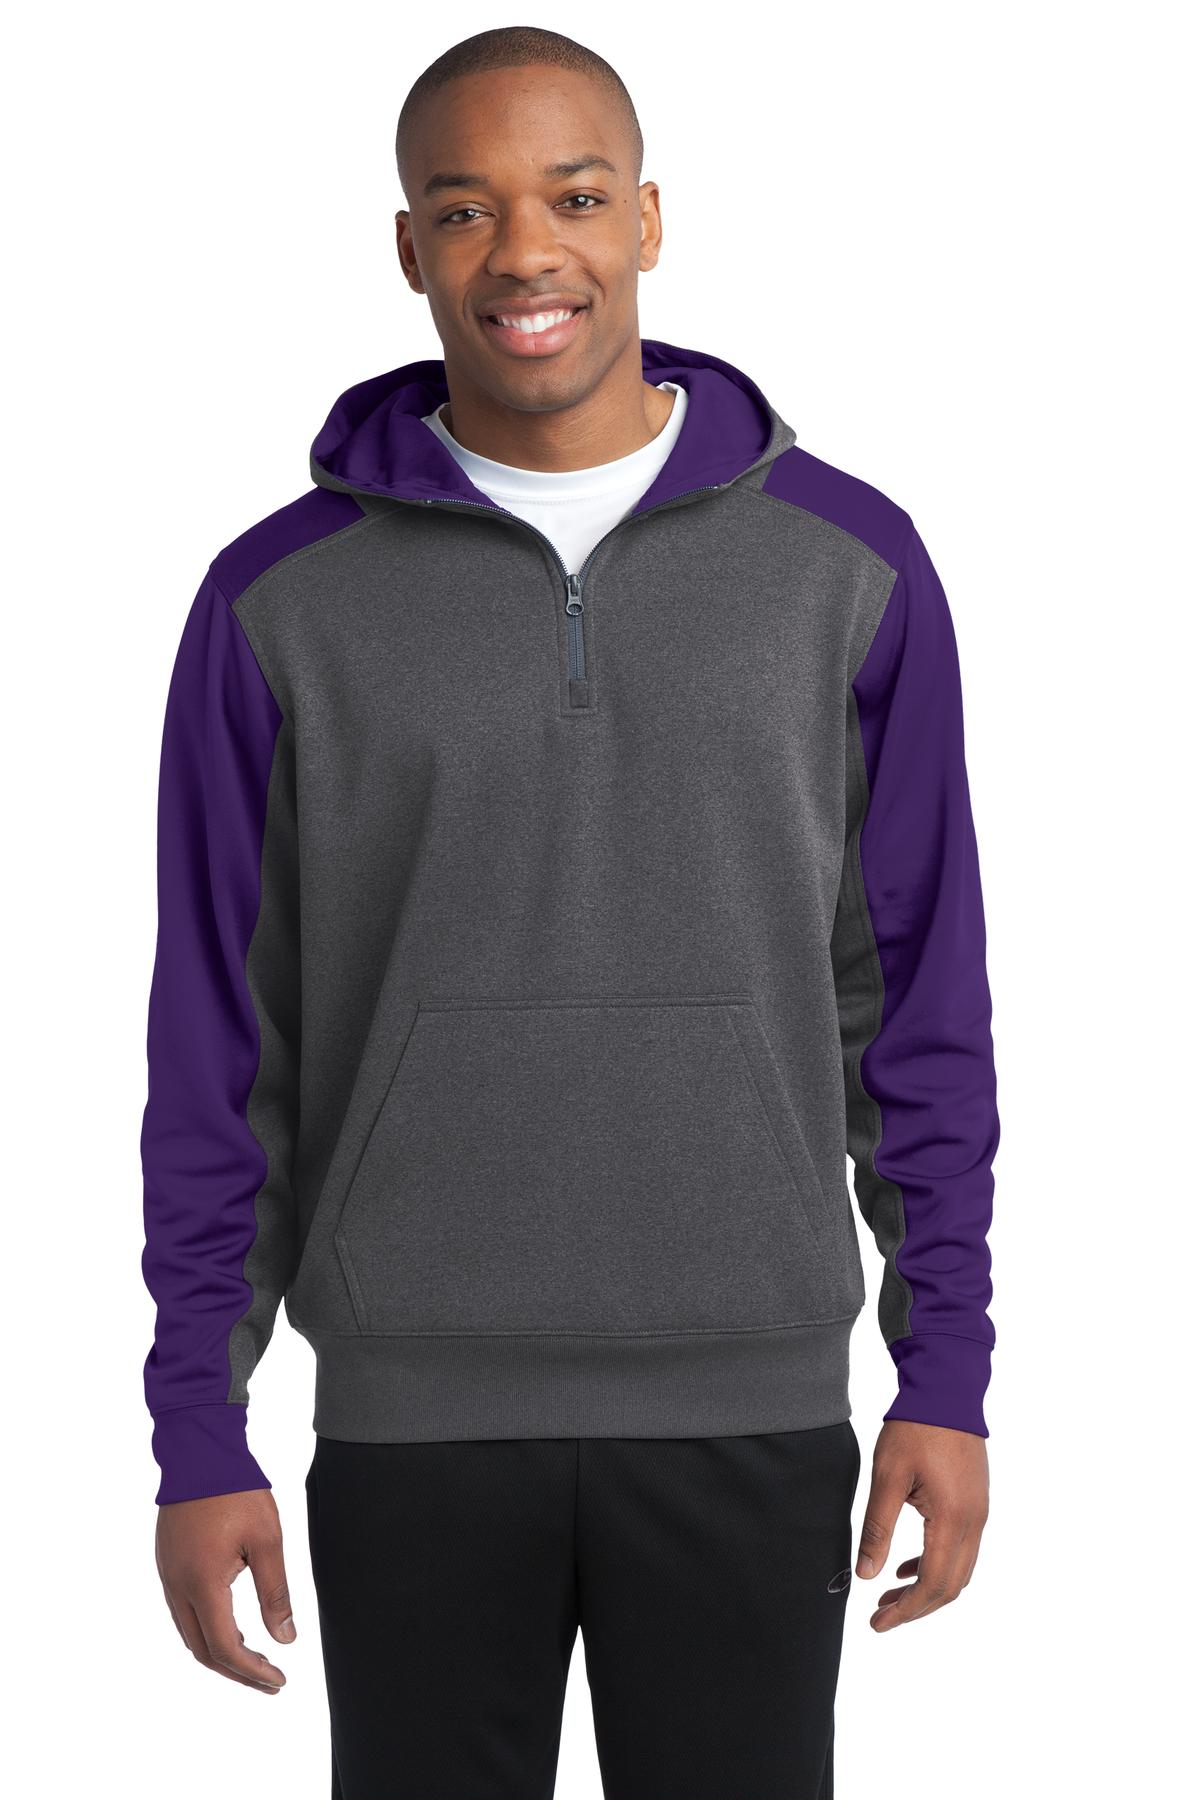 Sport-Tek ®   Tech Fleece Colorblock 1/4-Zip Hooded Sweatshirt. ST249 - Graphite Heather/ Purple